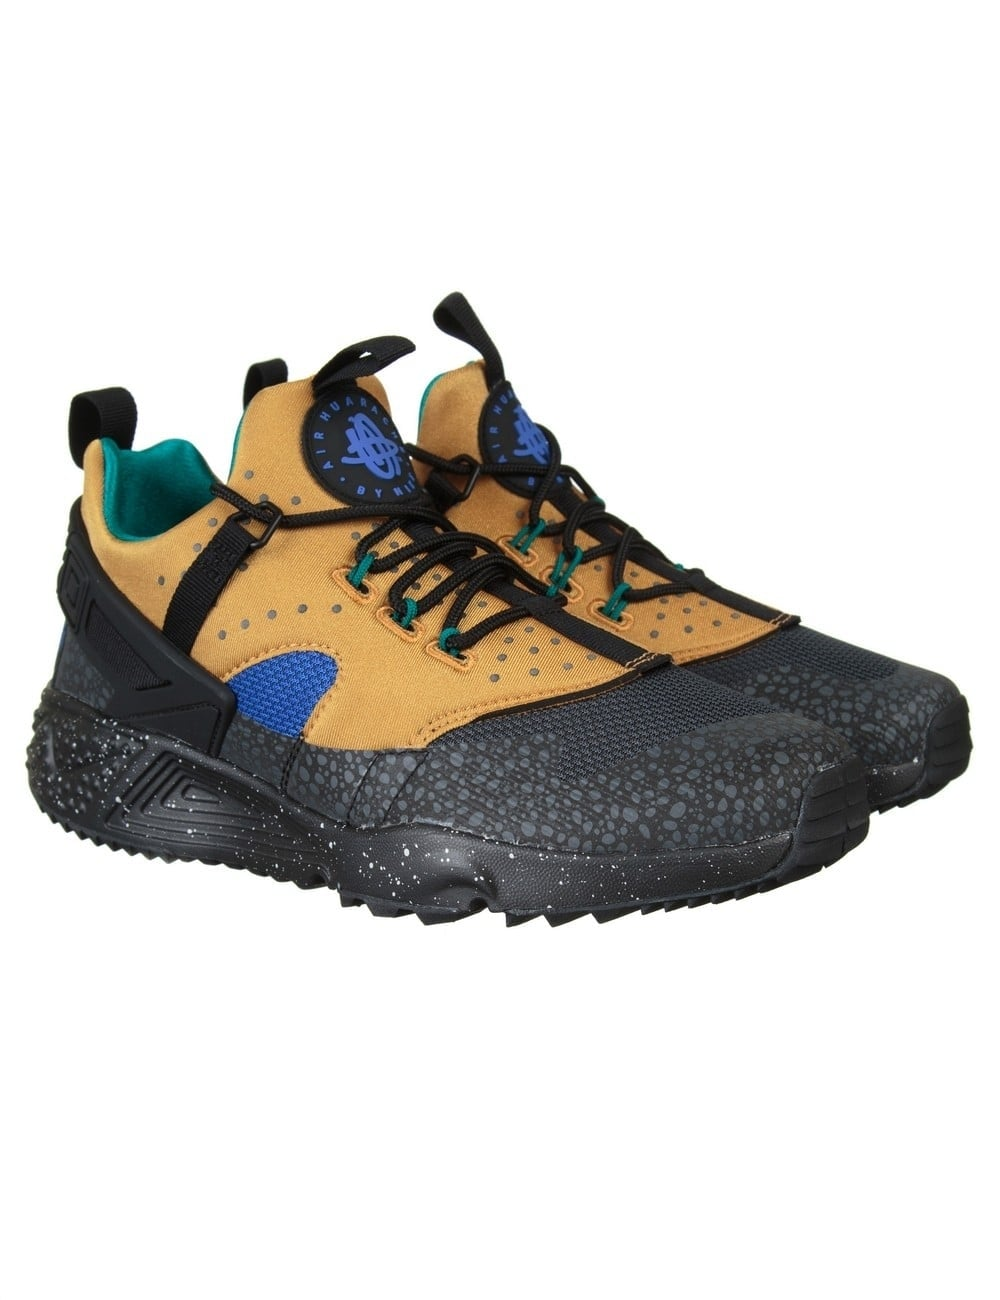 promo code c4dea 22633 Air Huarache Utility PRM Shoes - Bronze Black-Racer Blue